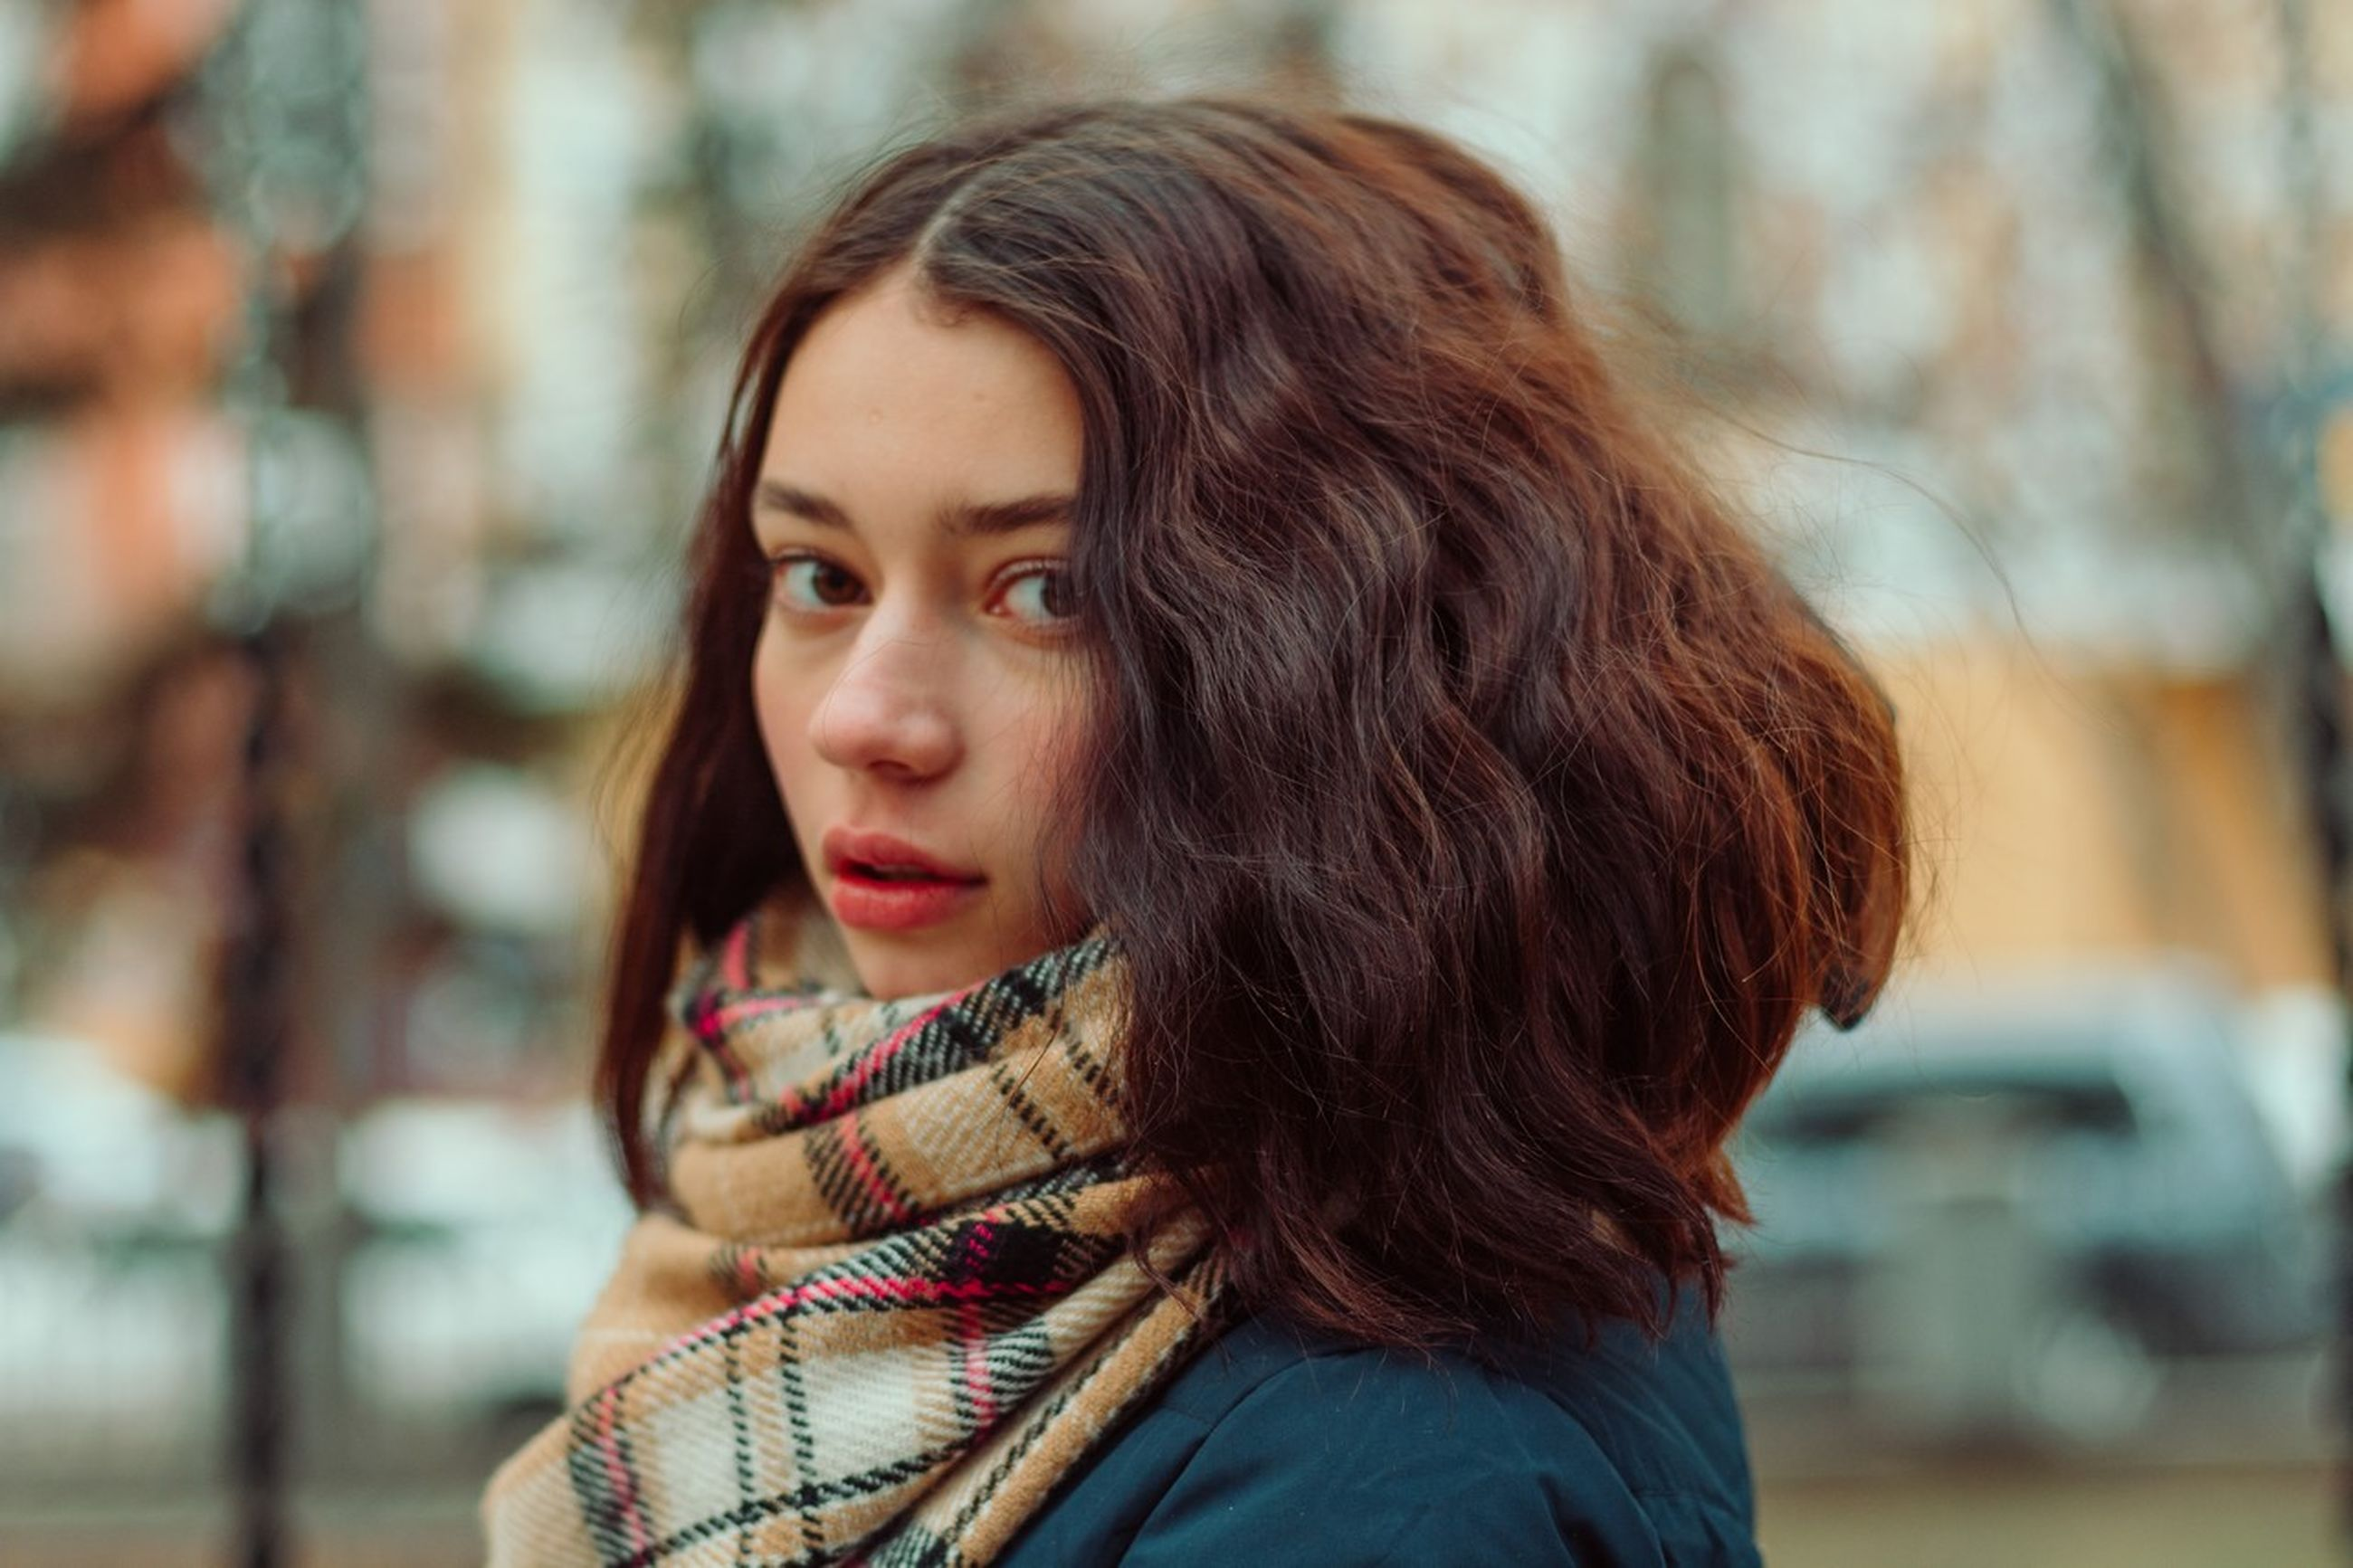 portrait, headshot, focus on foreground, one person, hairstyle, hair, brown hair, women, long hair, real people, looking, looking away, young adult, leisure activity, beautiful woman, day, lifestyles, beauty, young women, outdoors, contemplation, warm clothing, scarf